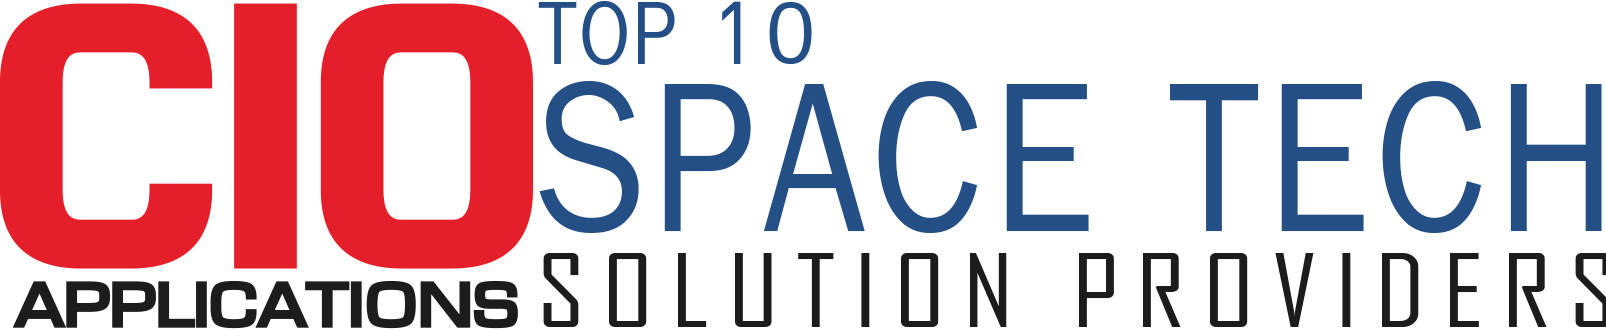 Top Space Technology Companies